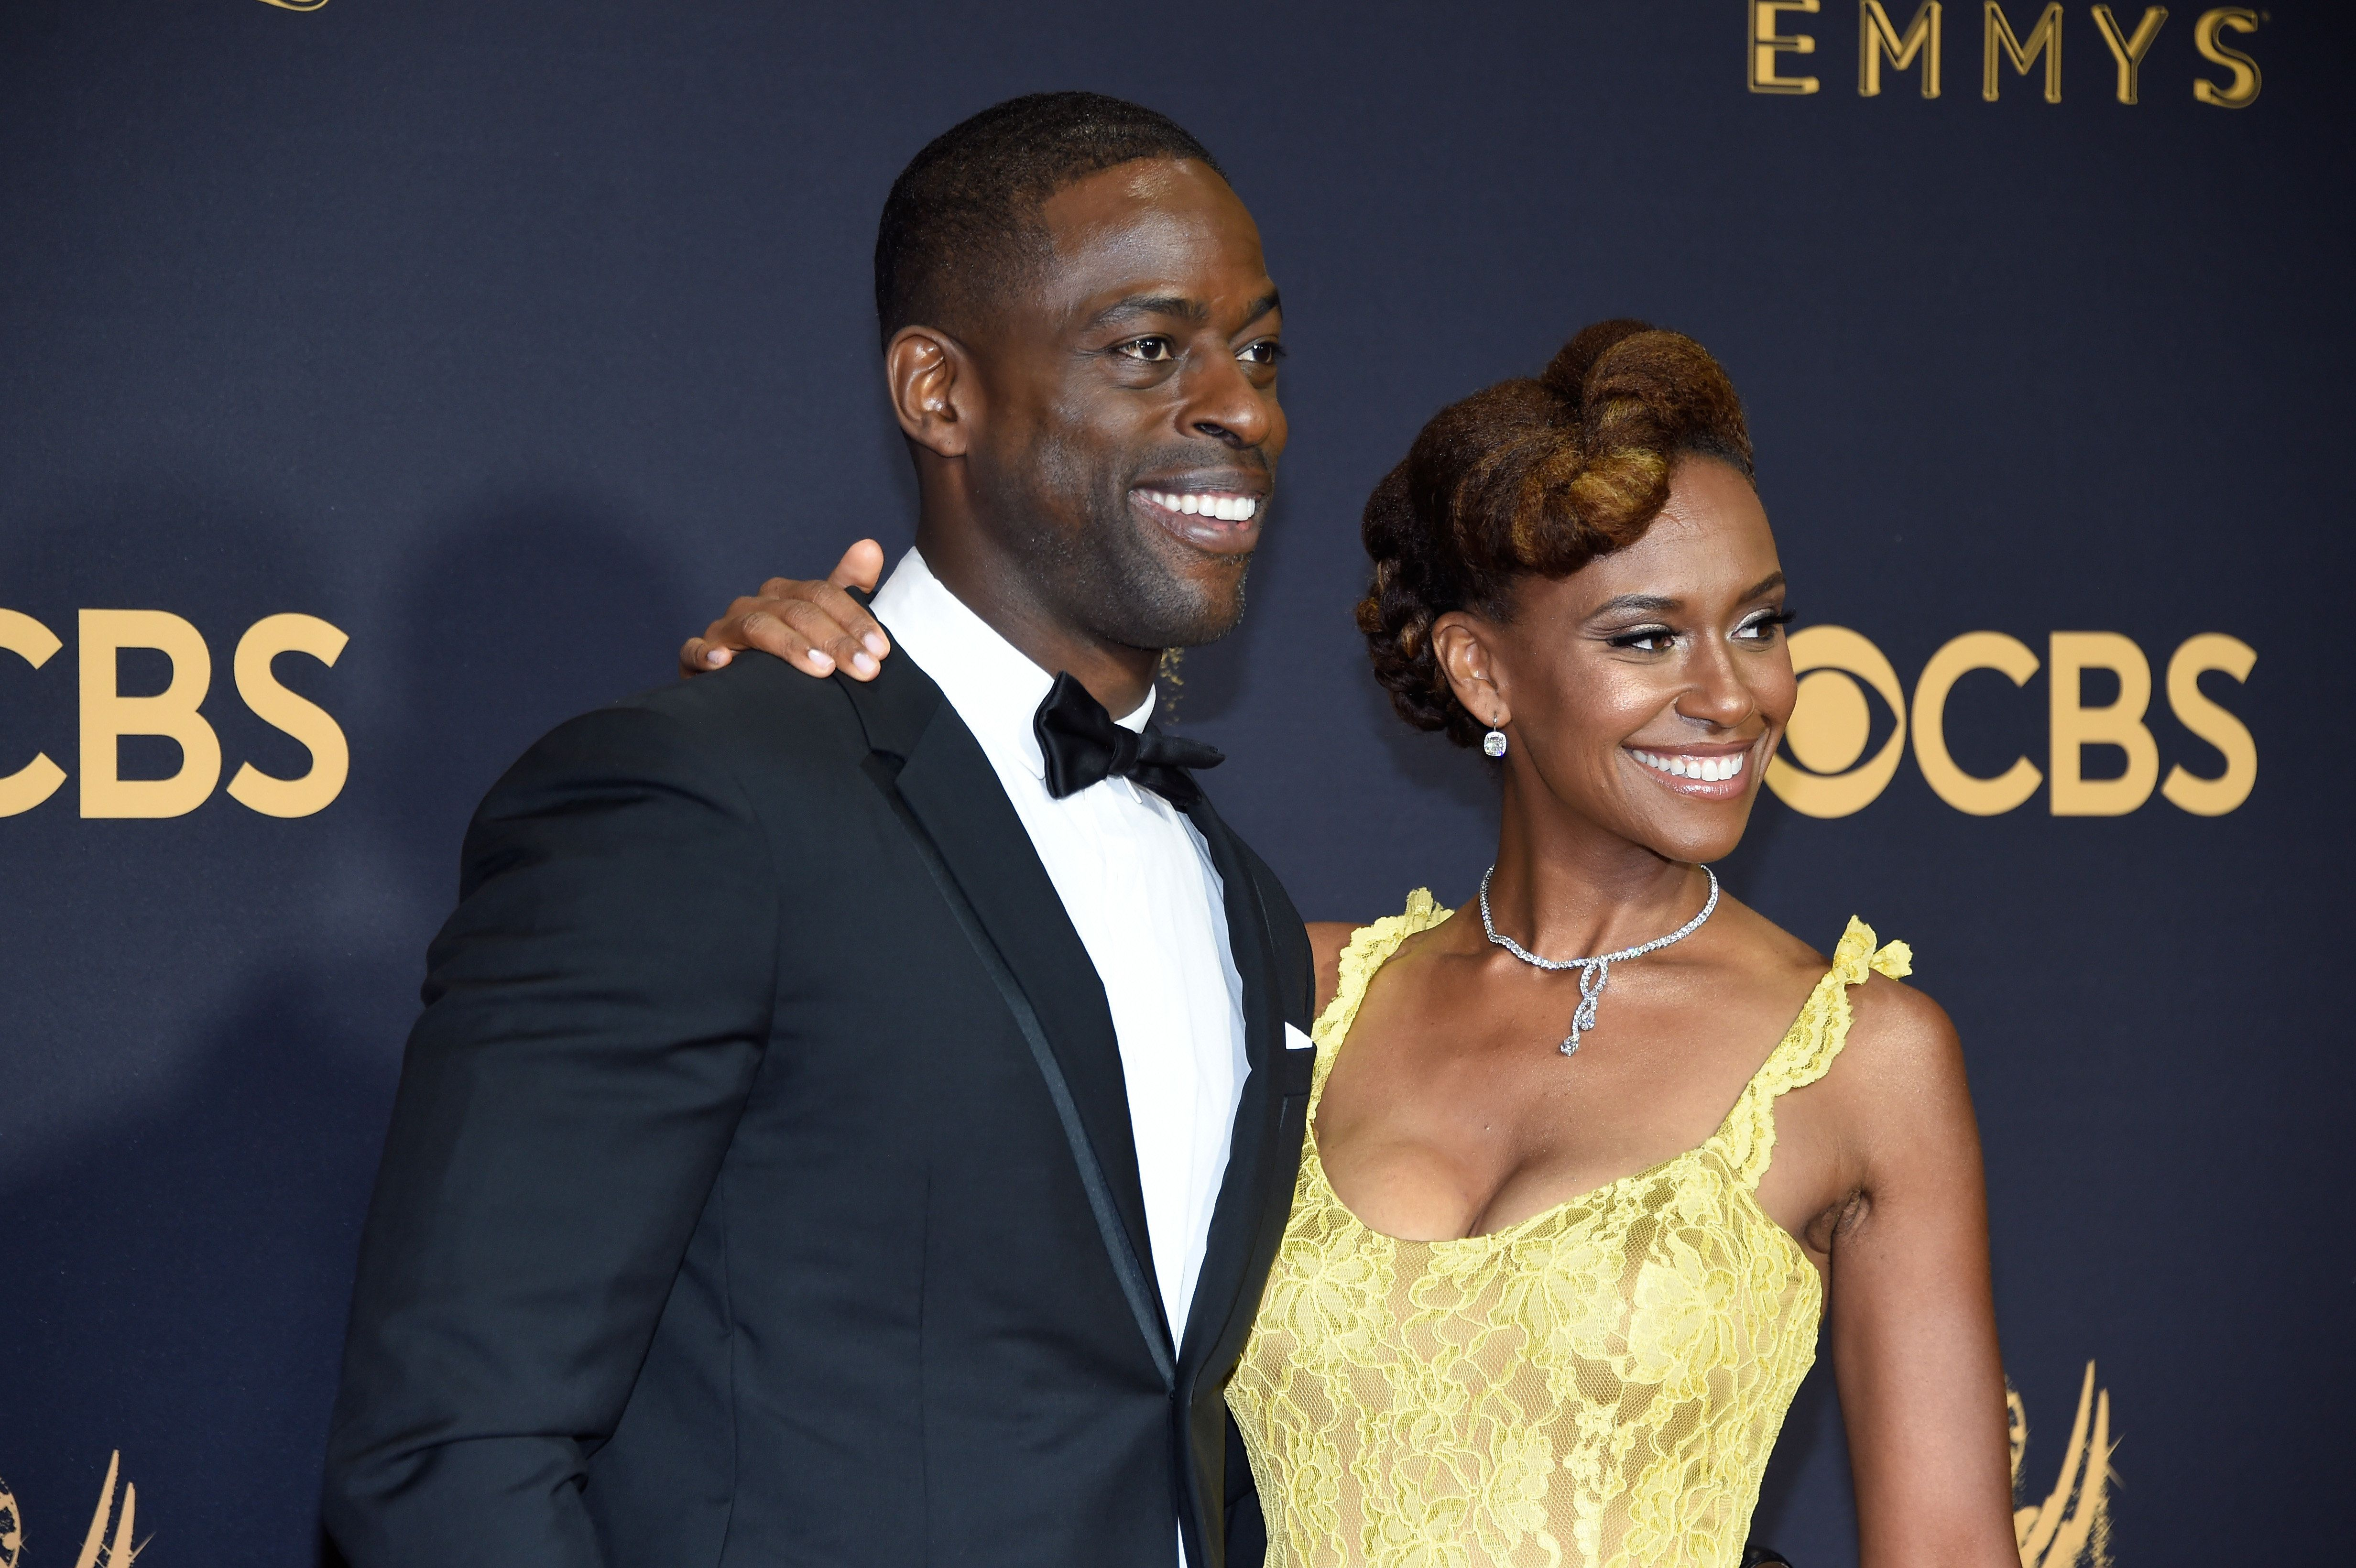 Actor Sterling K. Brown and his wife, actress Ryan Michelle Bathe, welcomed their first son at home about...